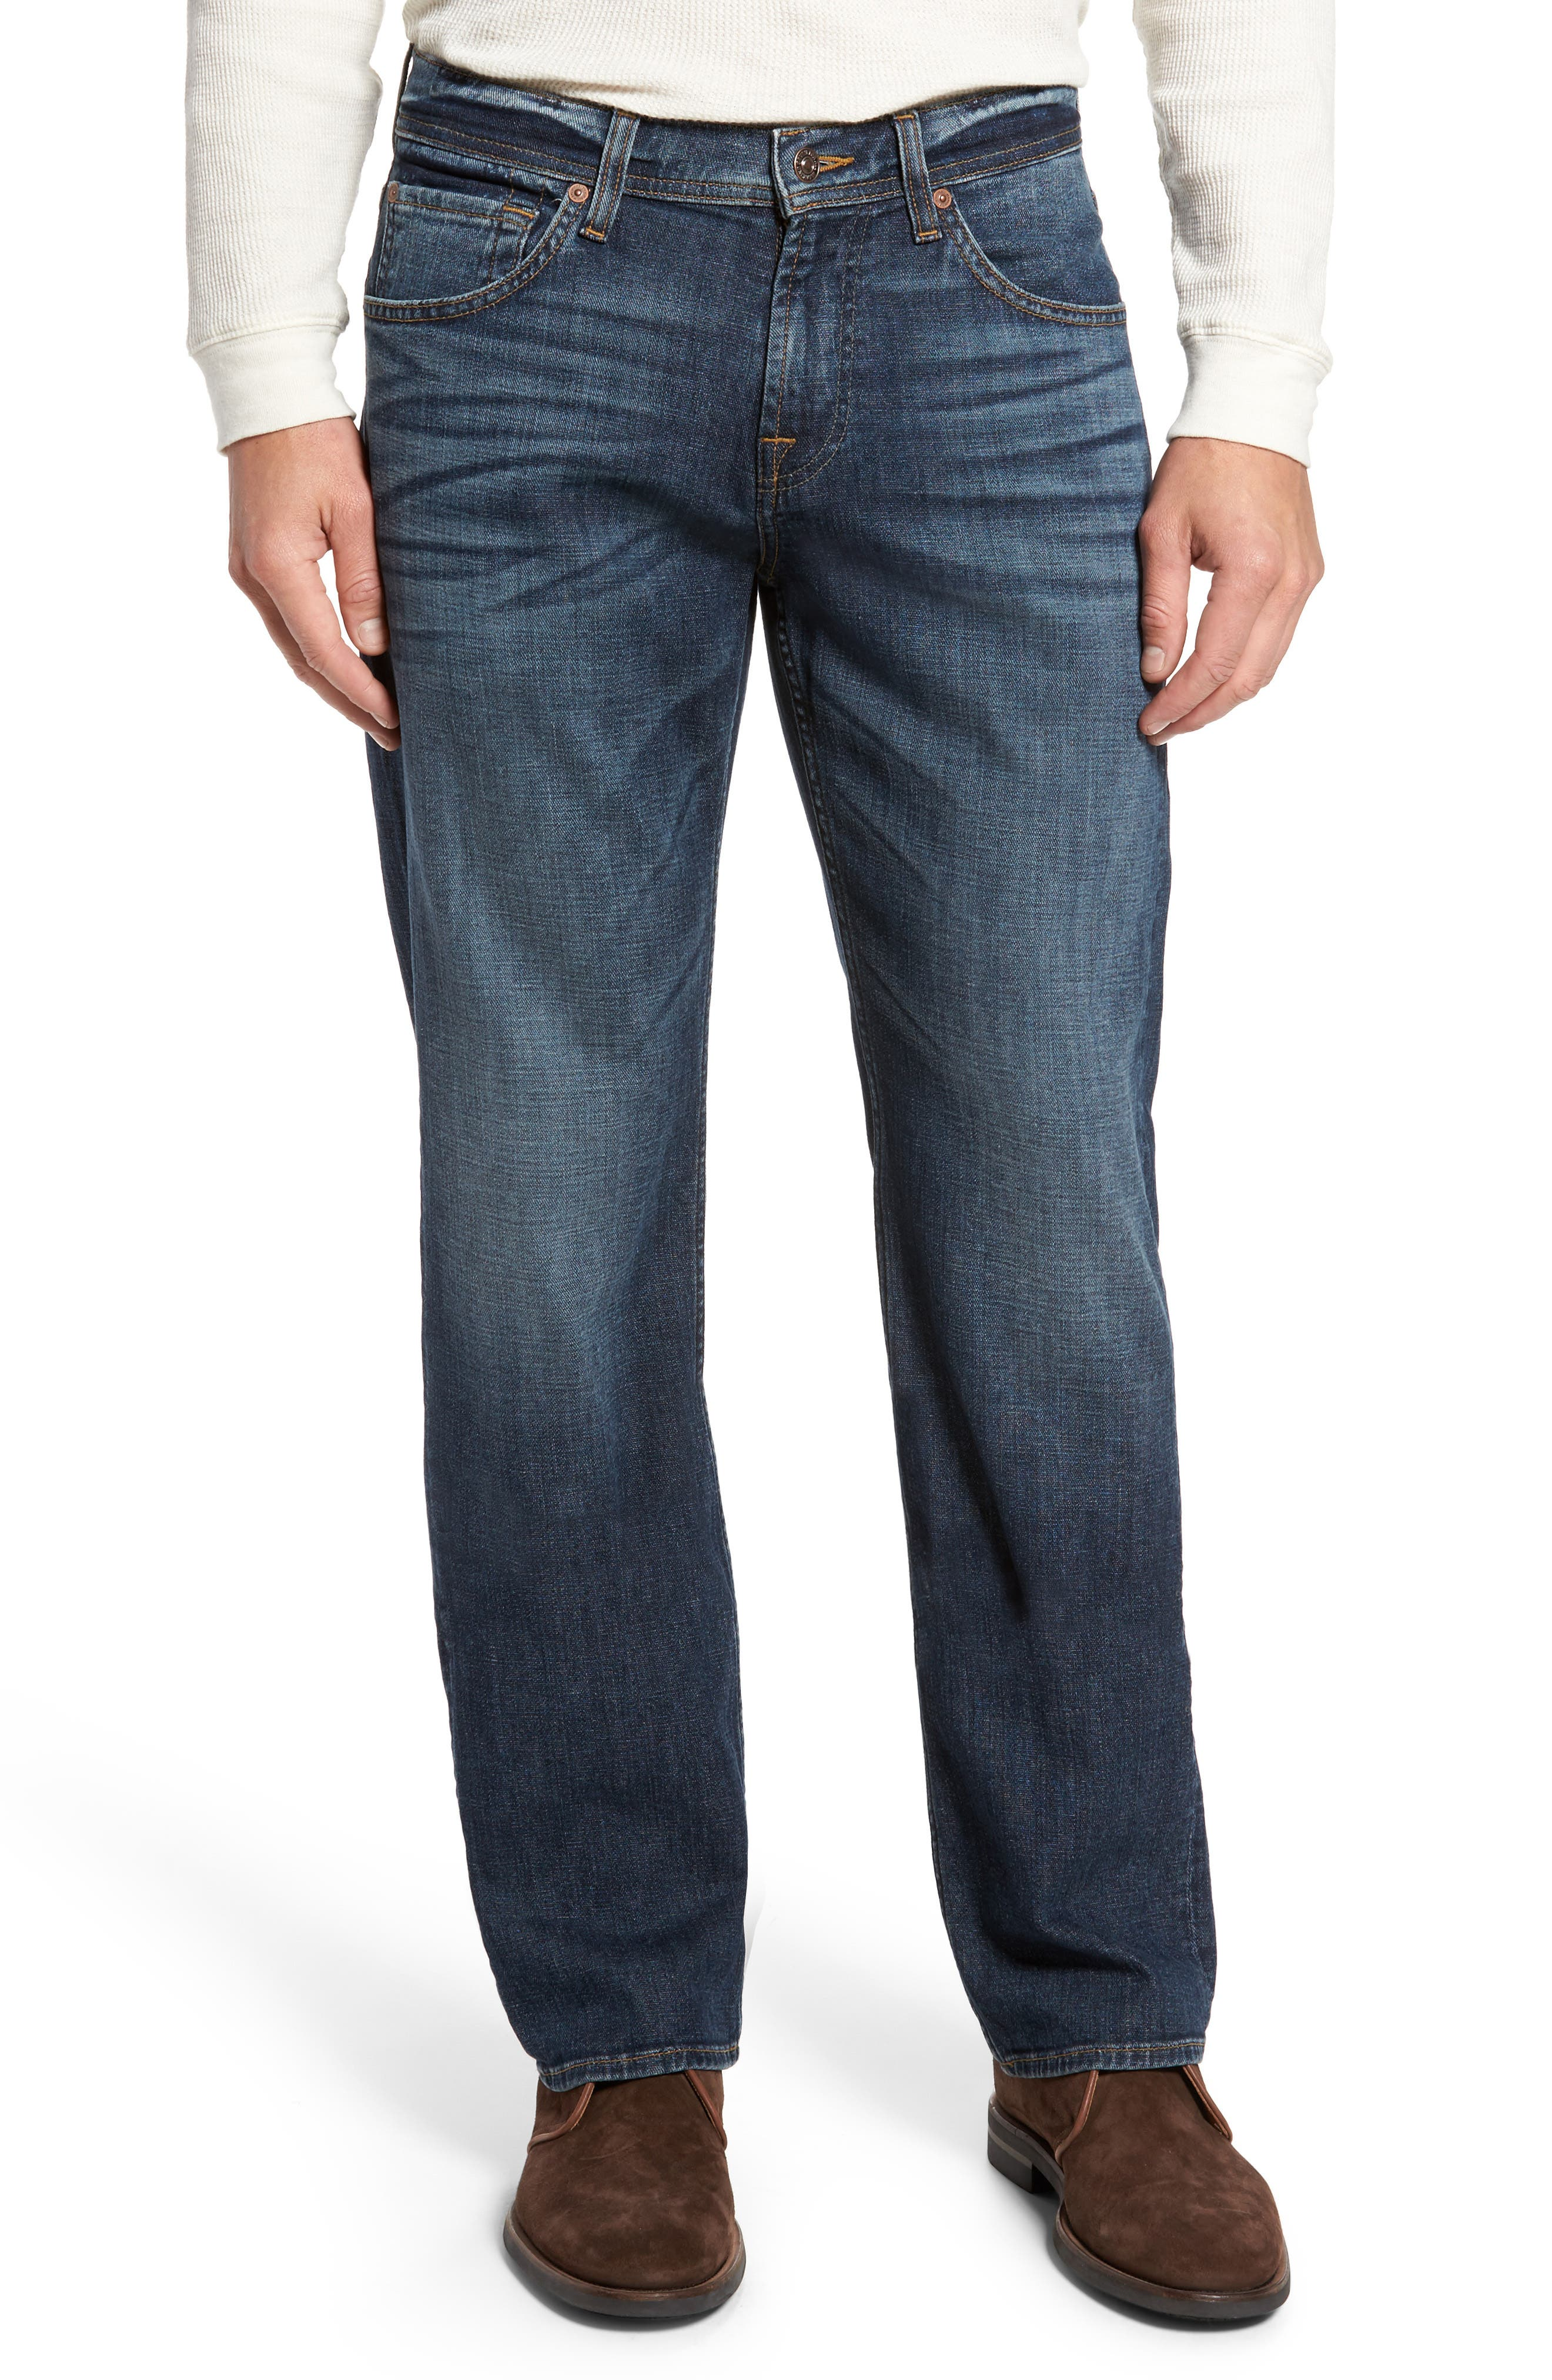 Austyn Relaxed Fit Jeans,                         Main,                         color, Nomad